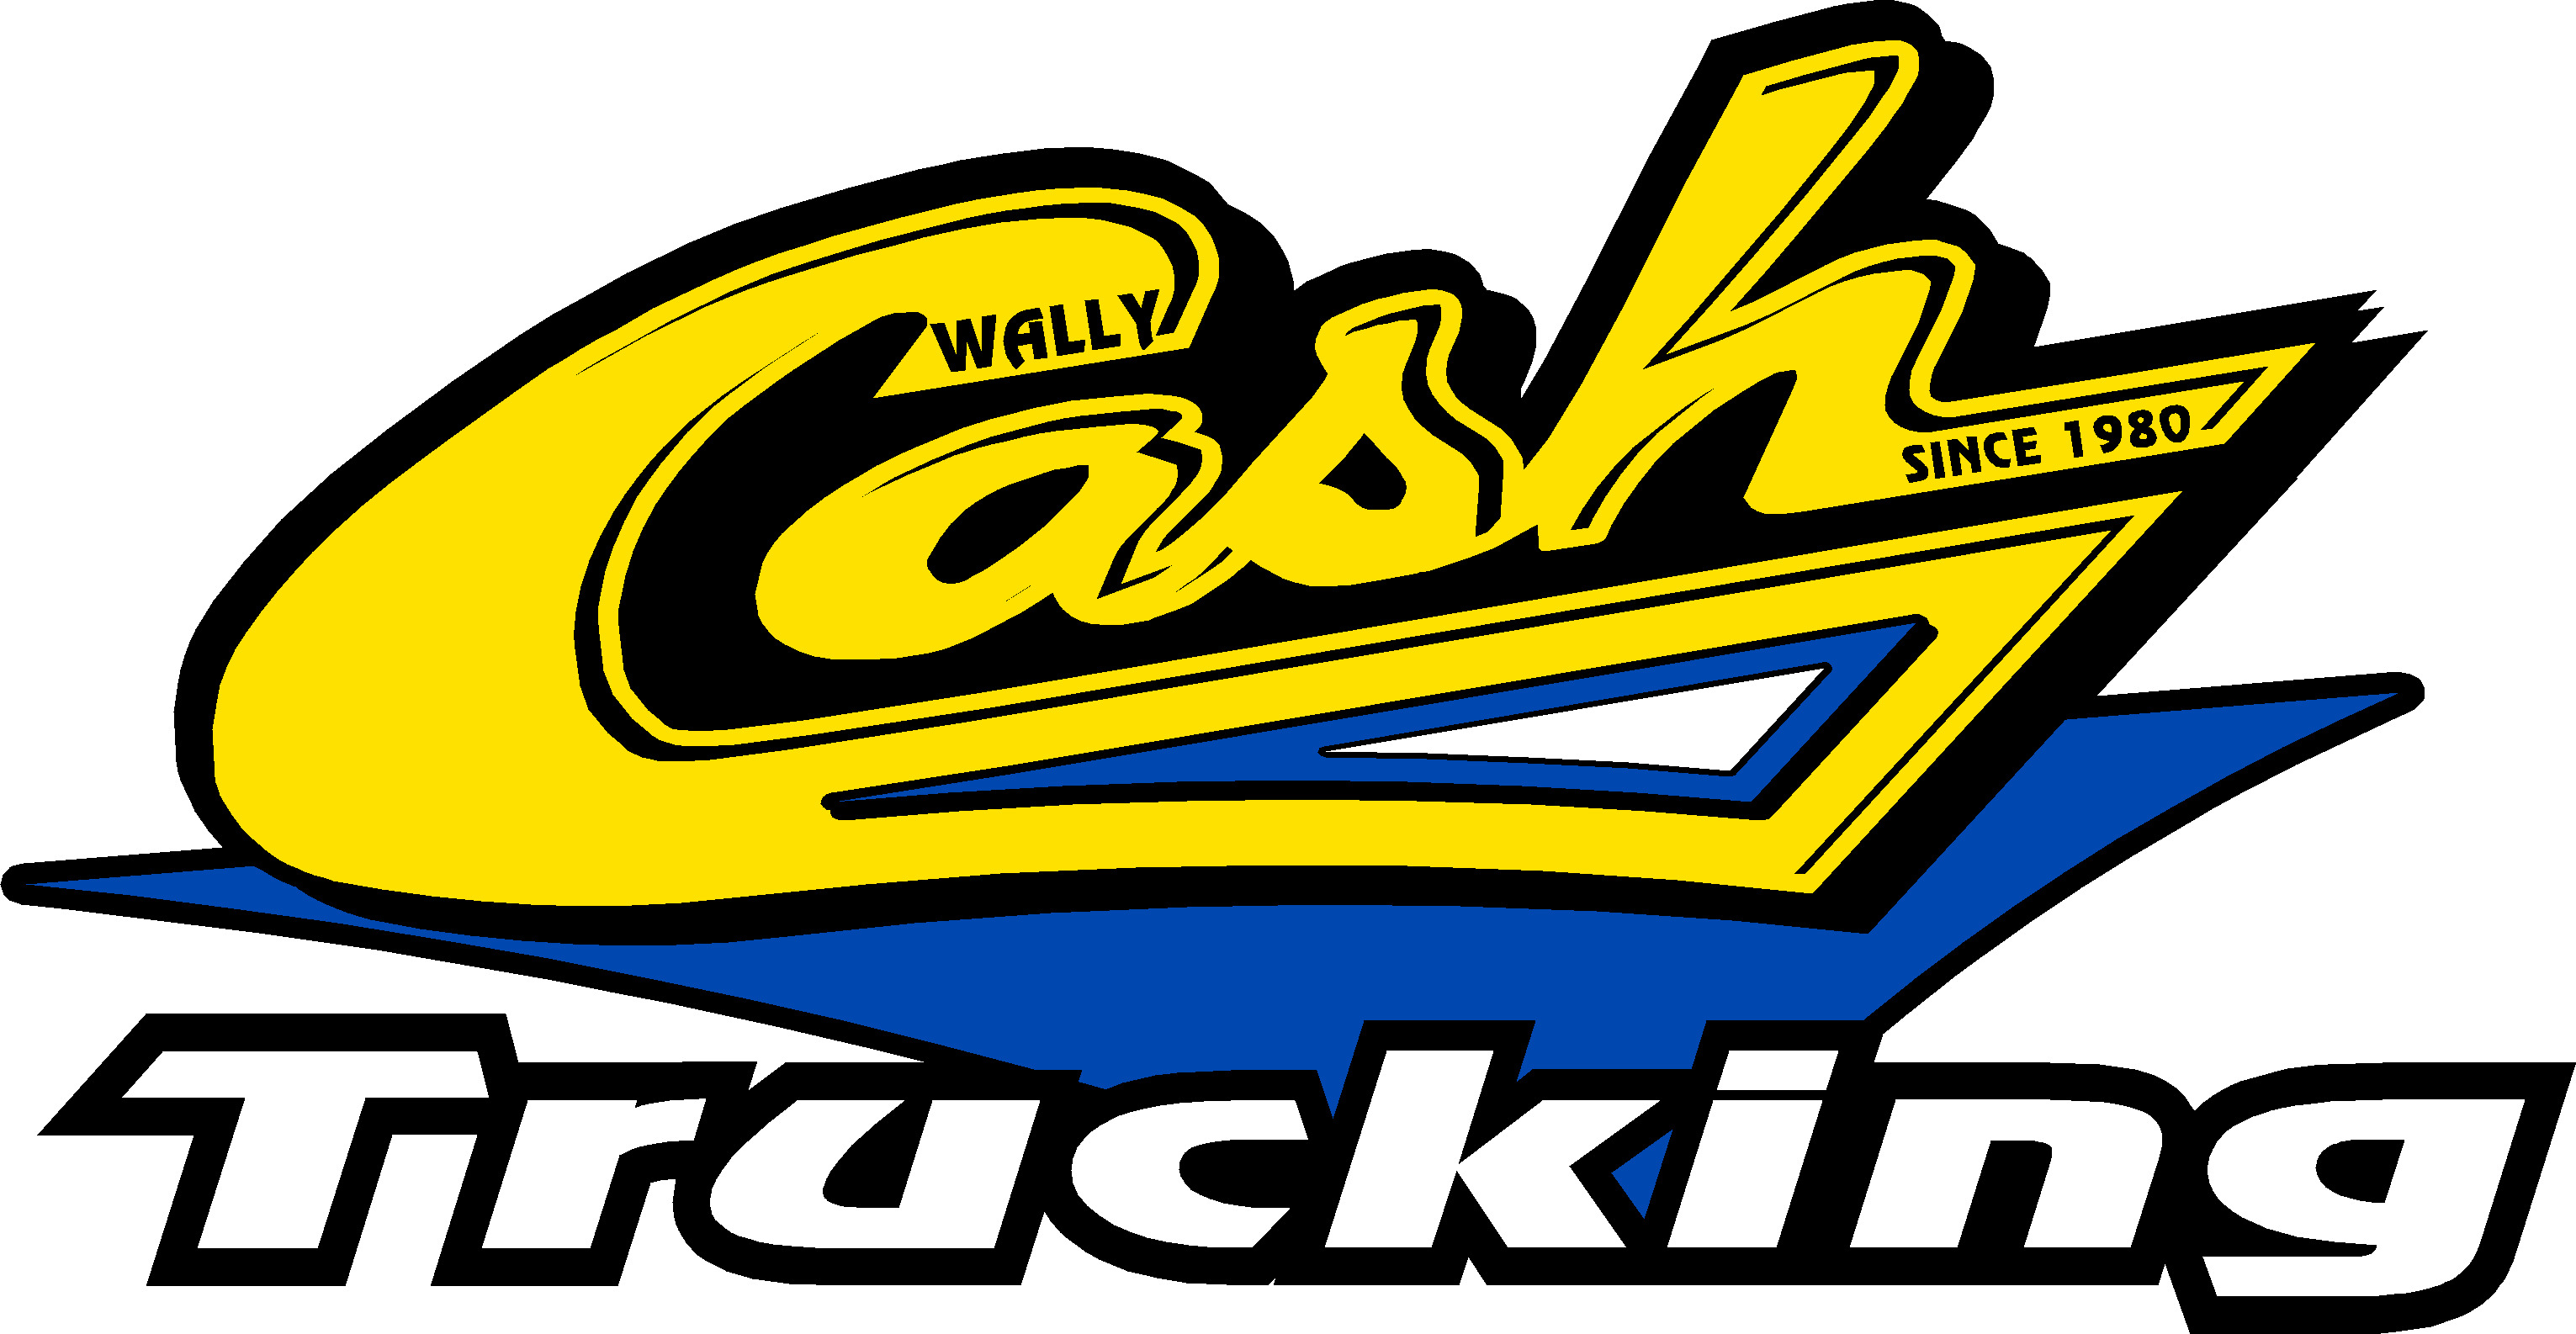 OTR Drivers- Home Weekly/No Touch Freight - Texas - Wally Cash Trucking, Inc.